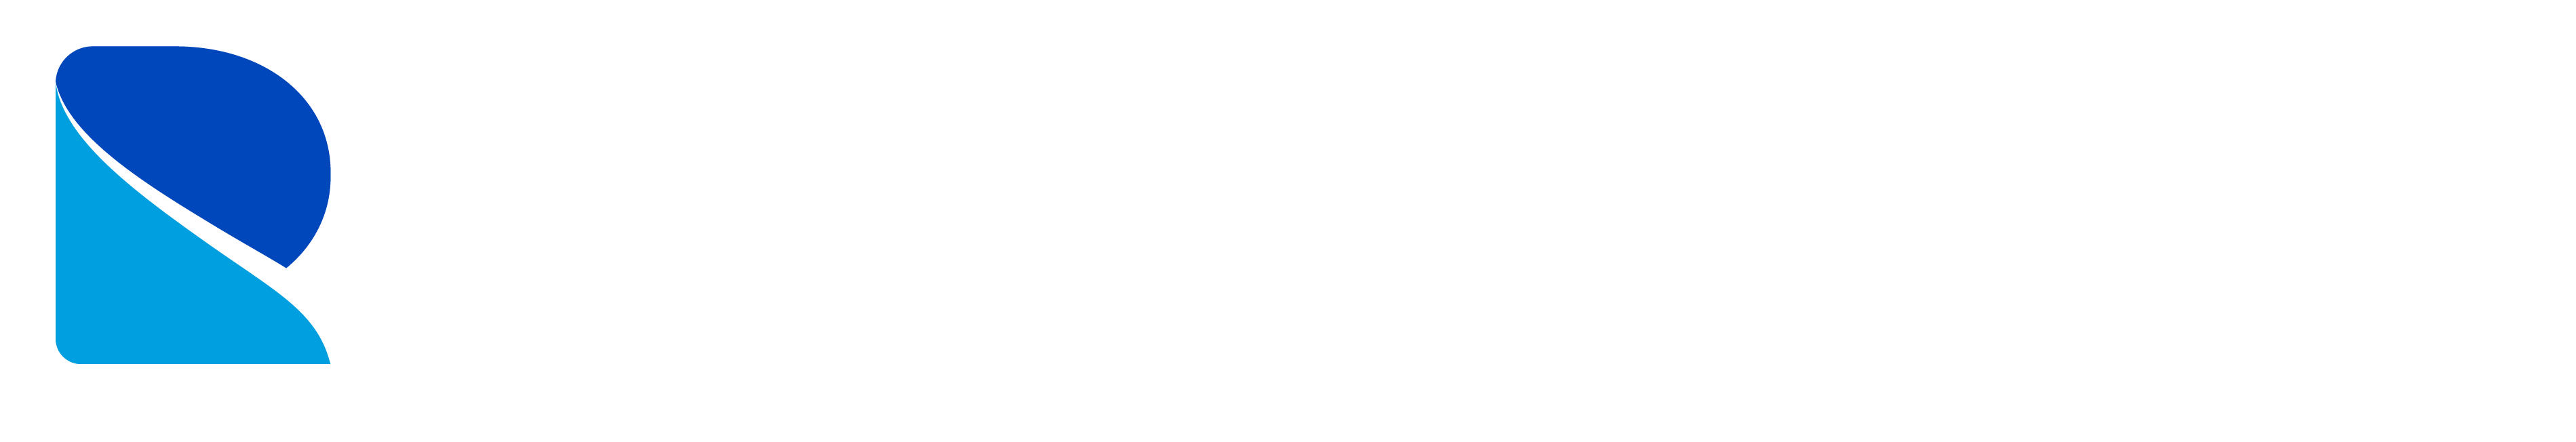 Data Refinery logo white